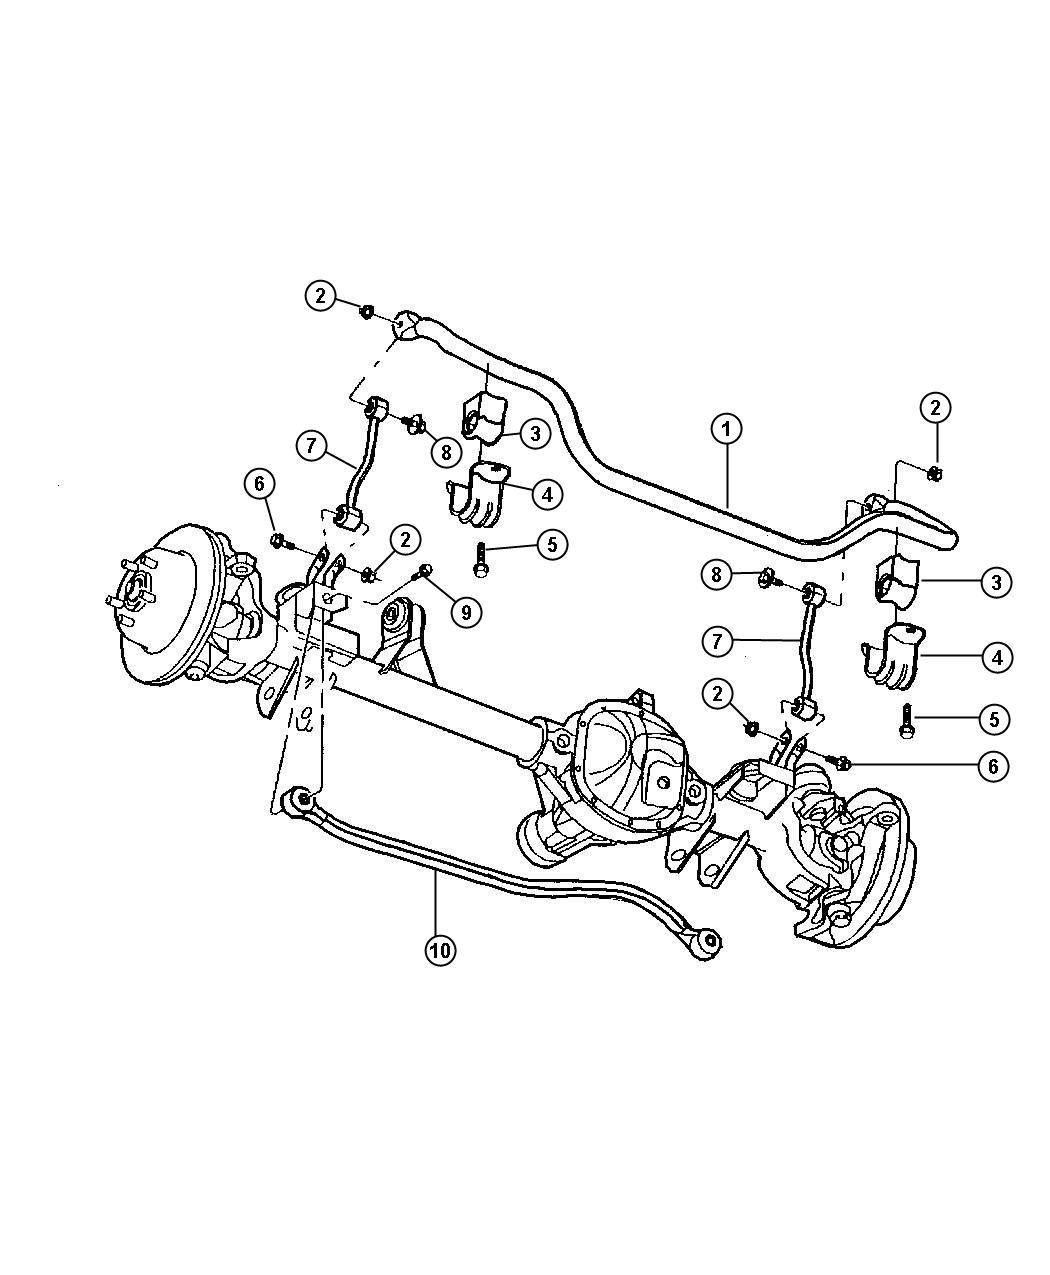 2004 chrysler pacifica engine diagram lewis dot for ch3cl rear suspension